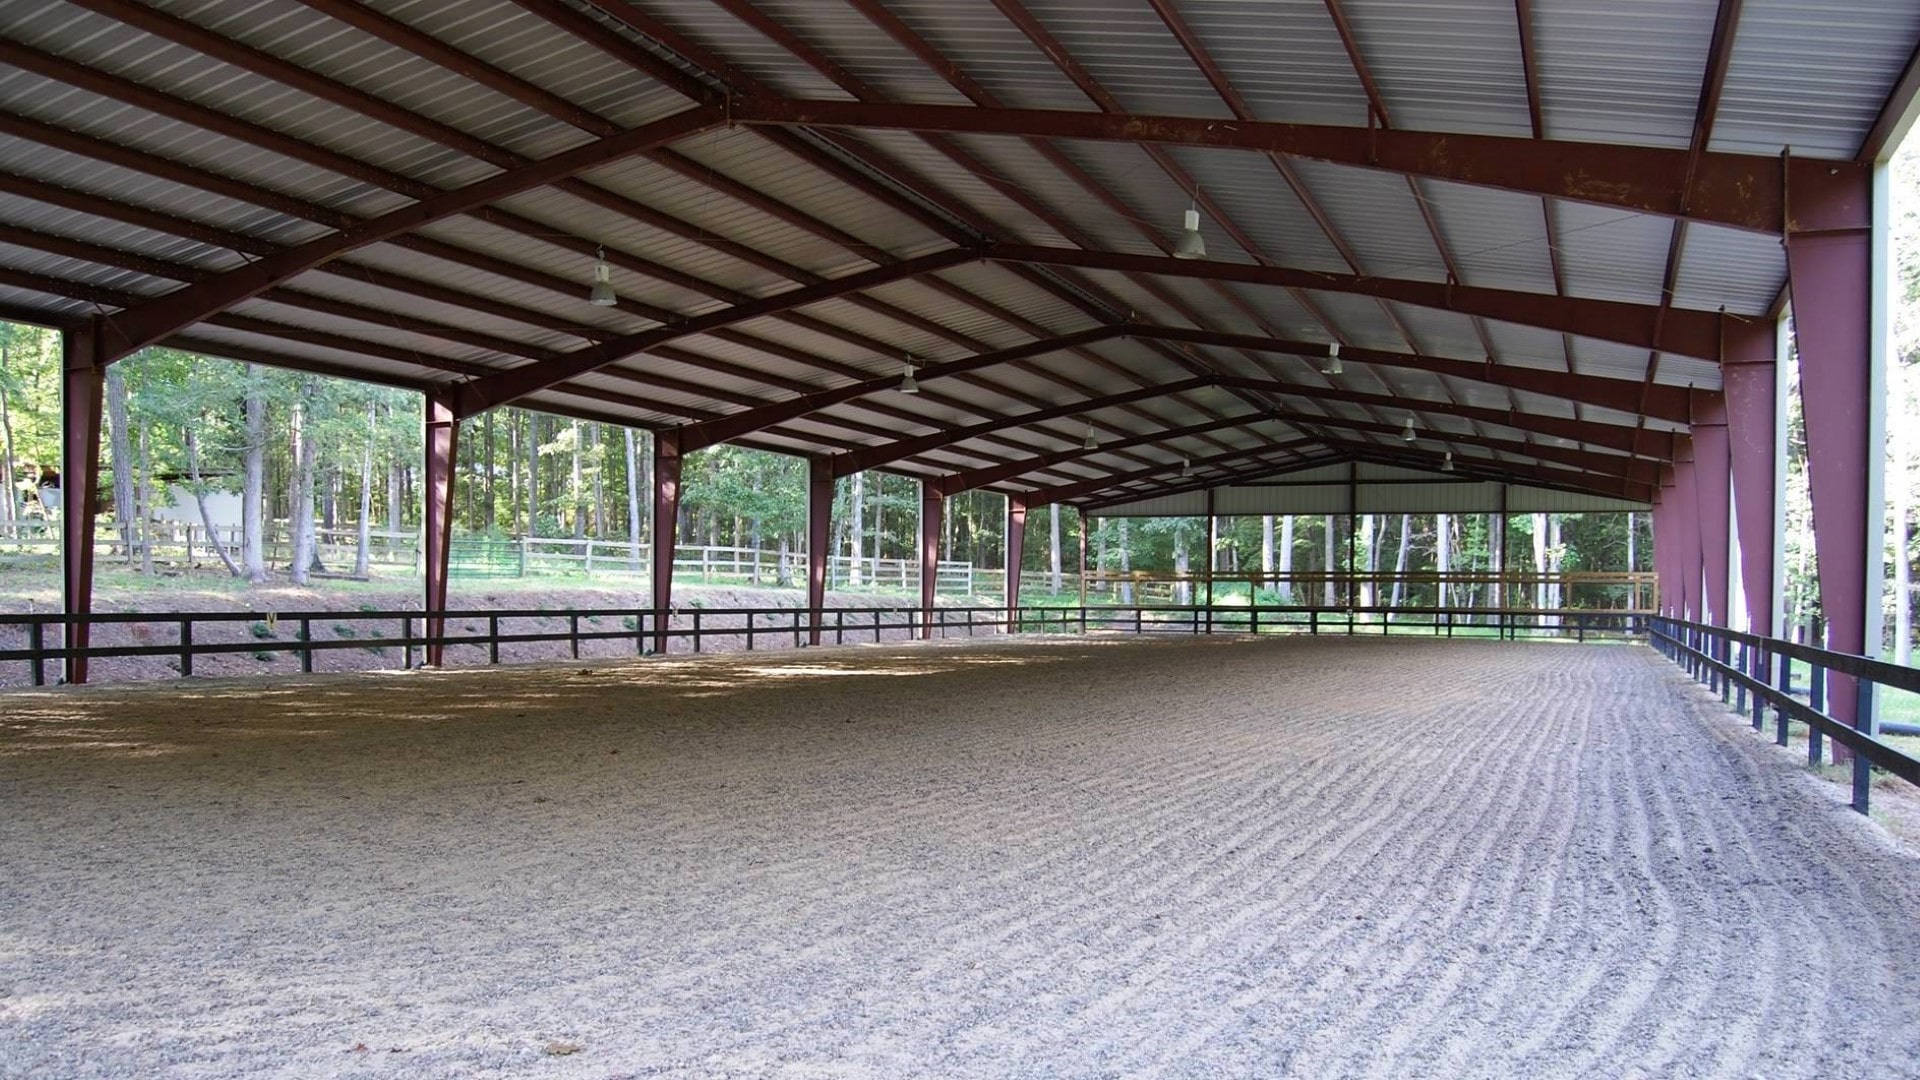 Open outdoor metal riding arena with partially sheeted gable ends.